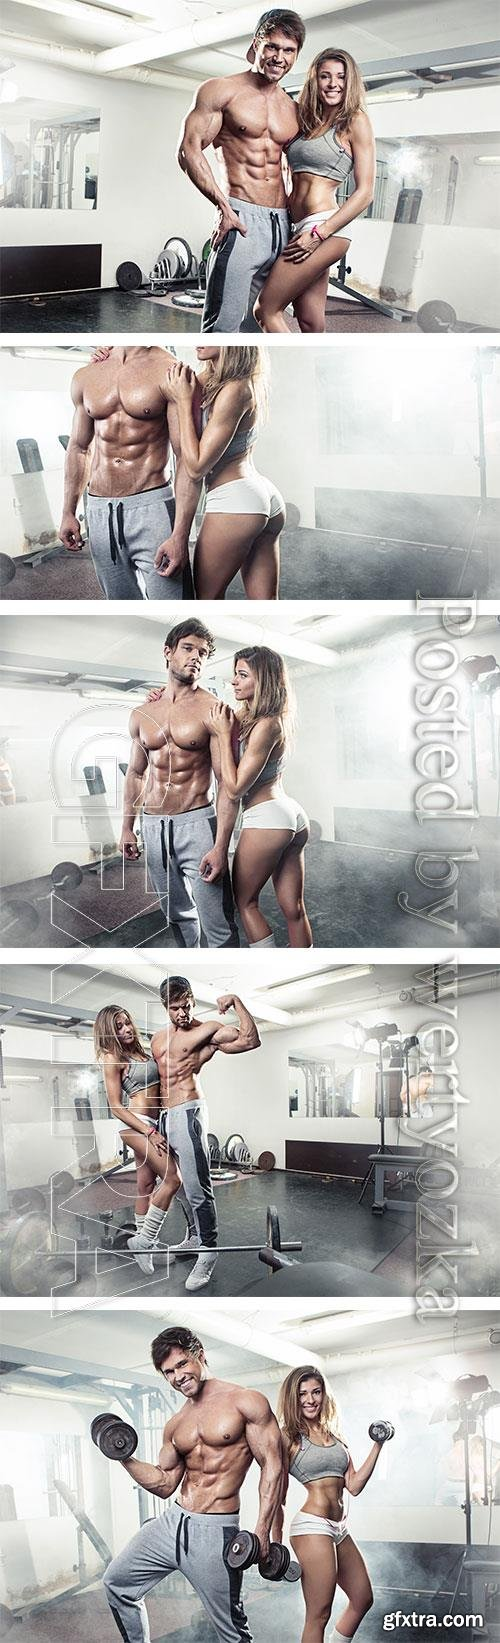 Young athletic man and girl in gym stock photo